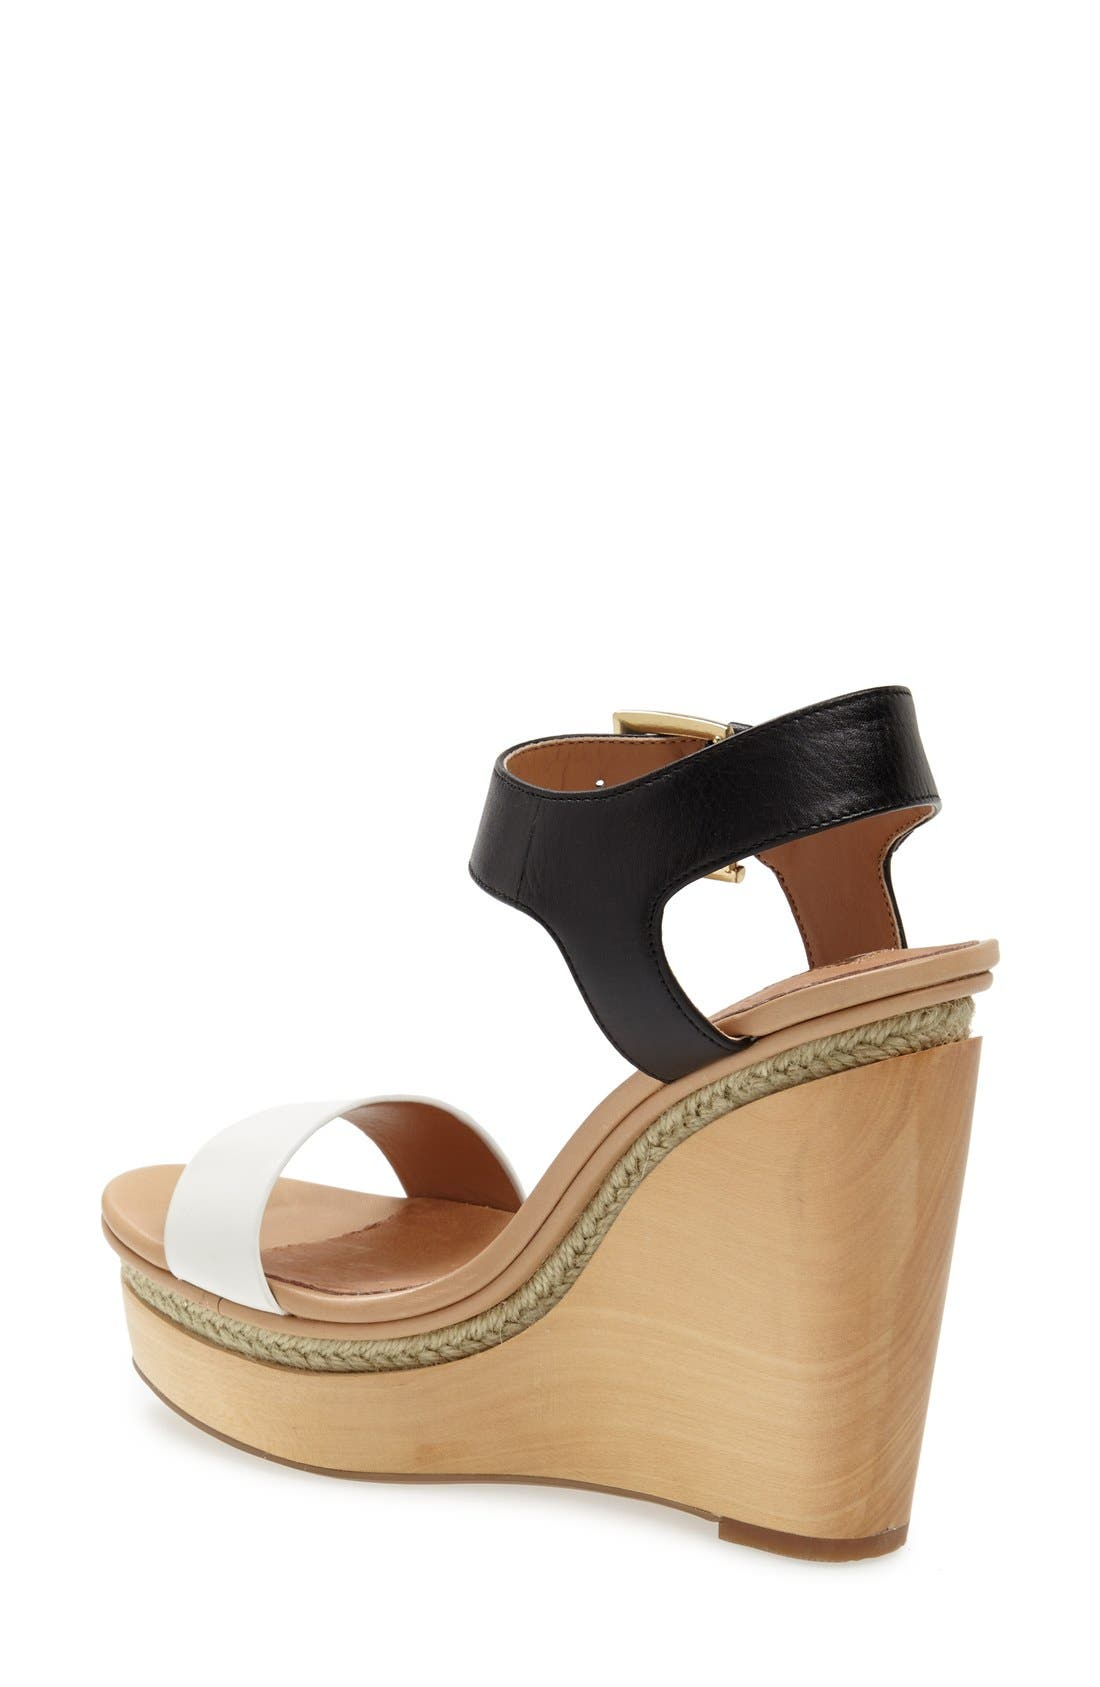 Alternate Image 2  - HALOGEN JANAE WEDGE SANDAL